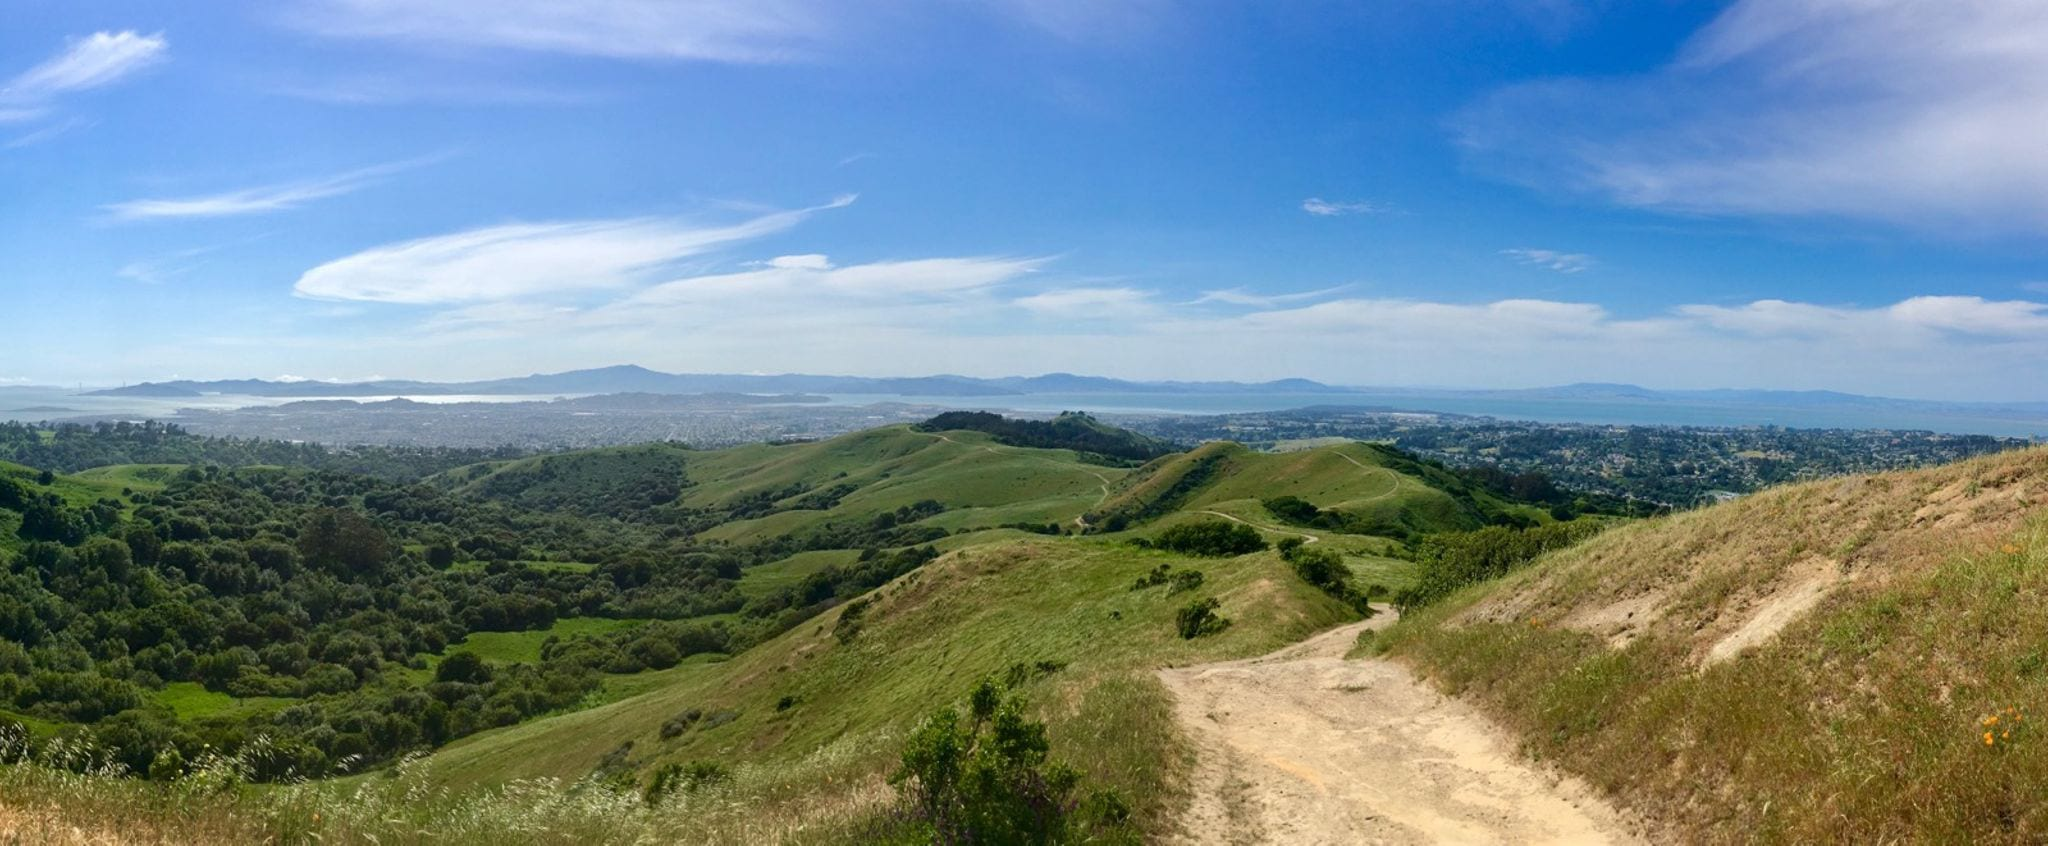 View of the bay area from ridge on gravel bike ride. Oakland, CA.